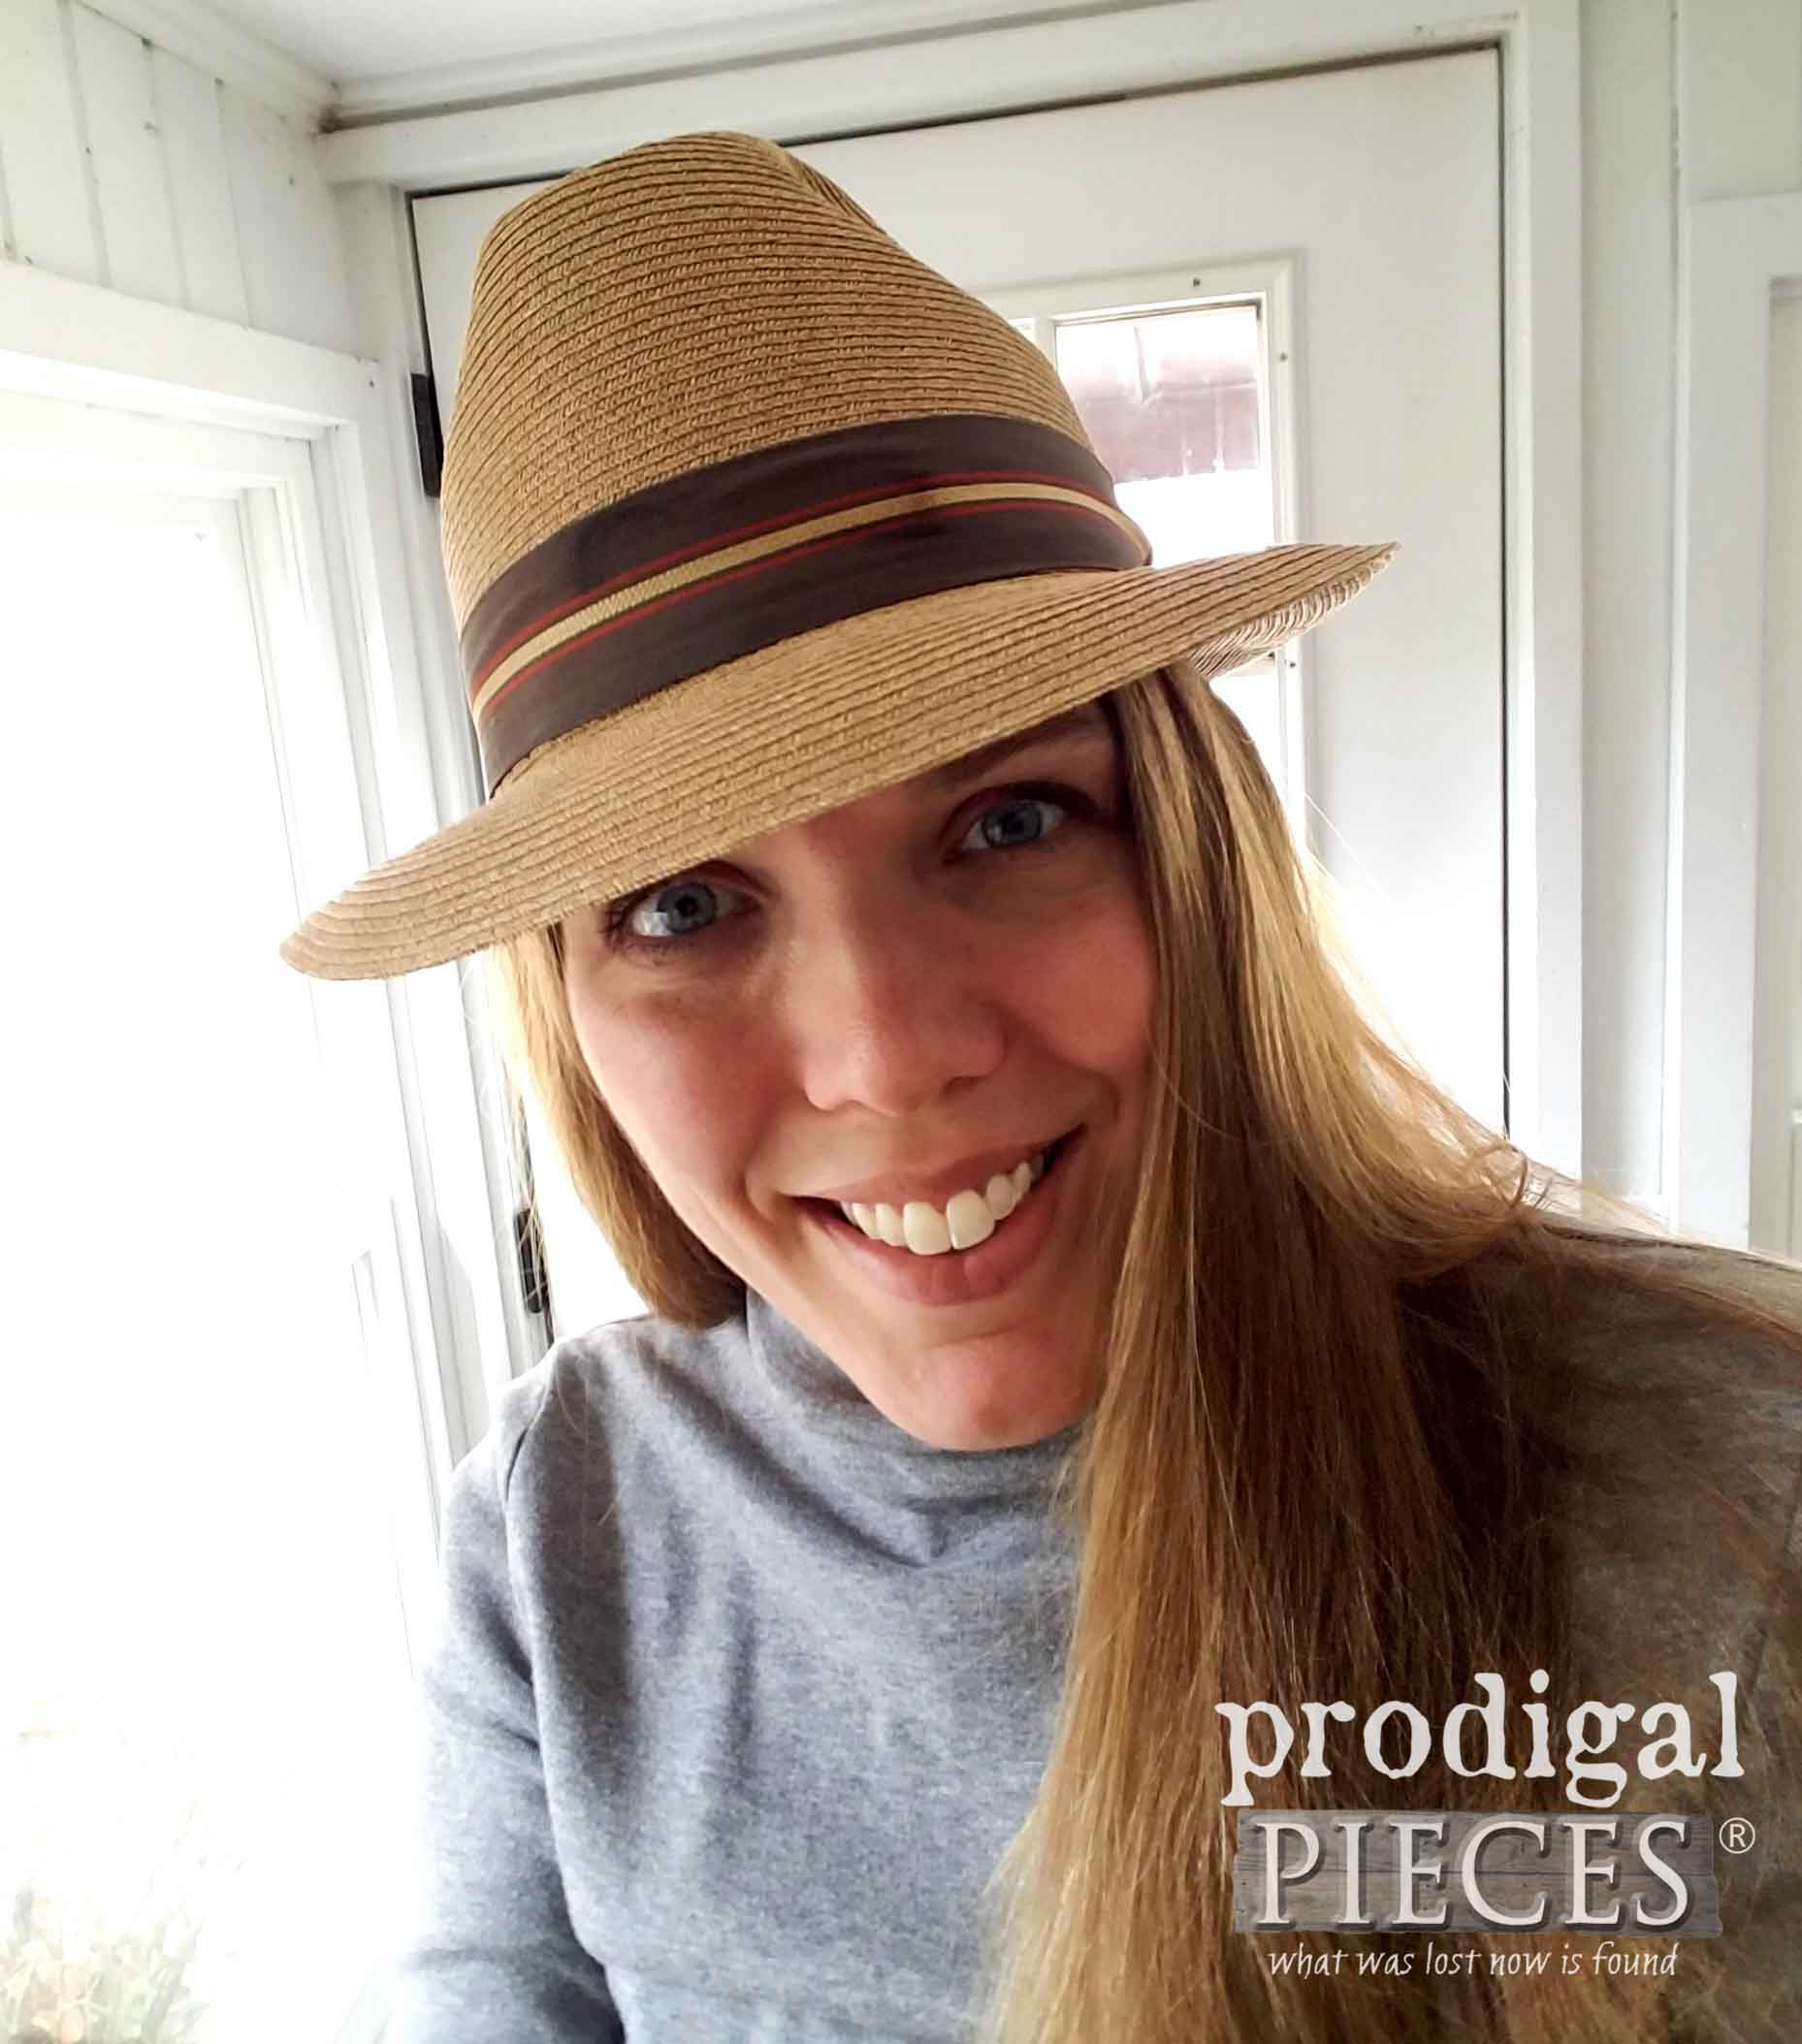 Larissa of Prodigal Pieces in Vintage Hat | prodigalpieces.com